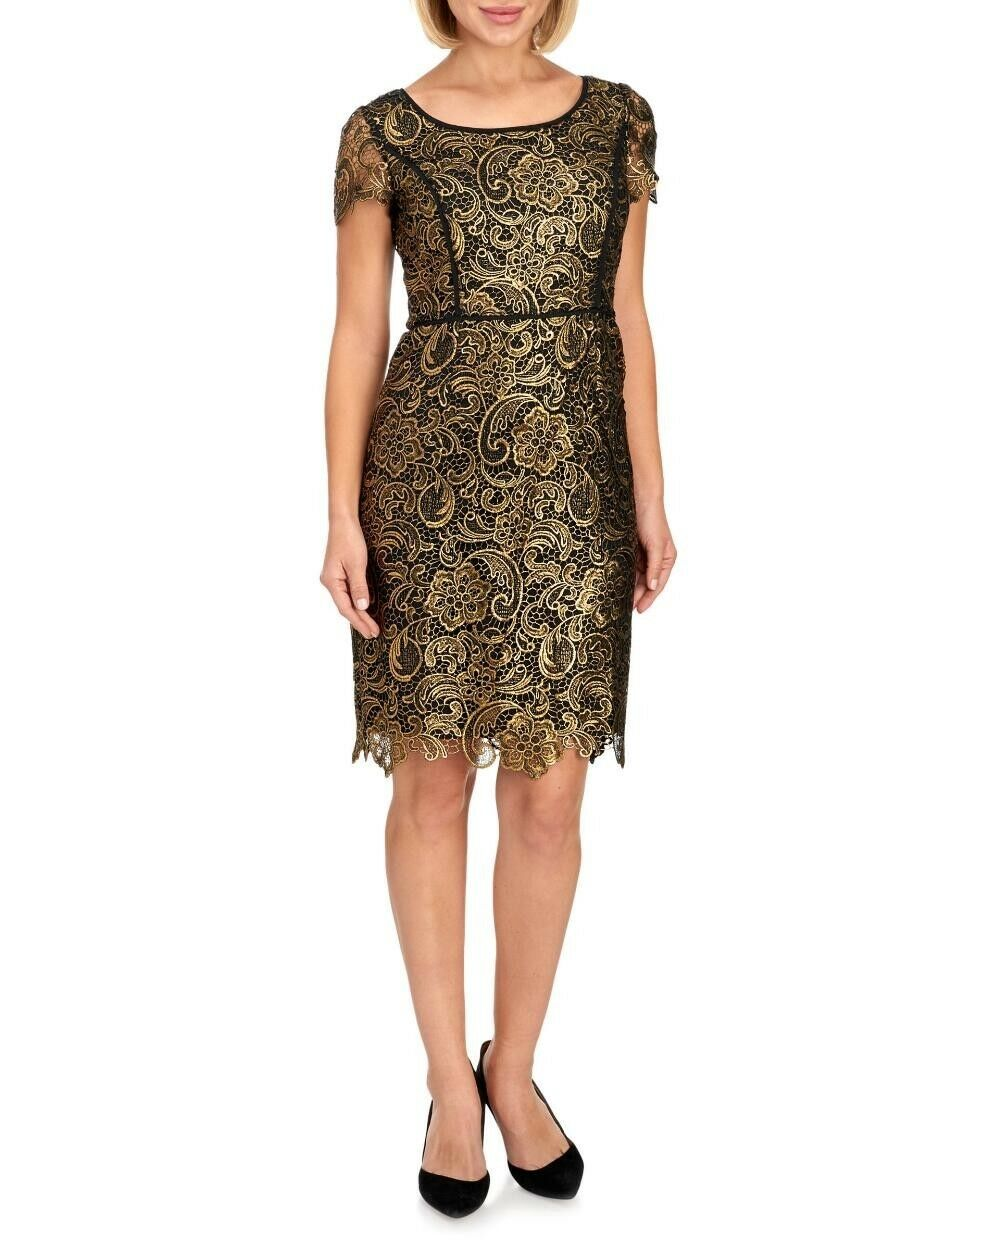 NWT Nue by Shani Metallic Gold Lace Dress Größe 8 Retails for